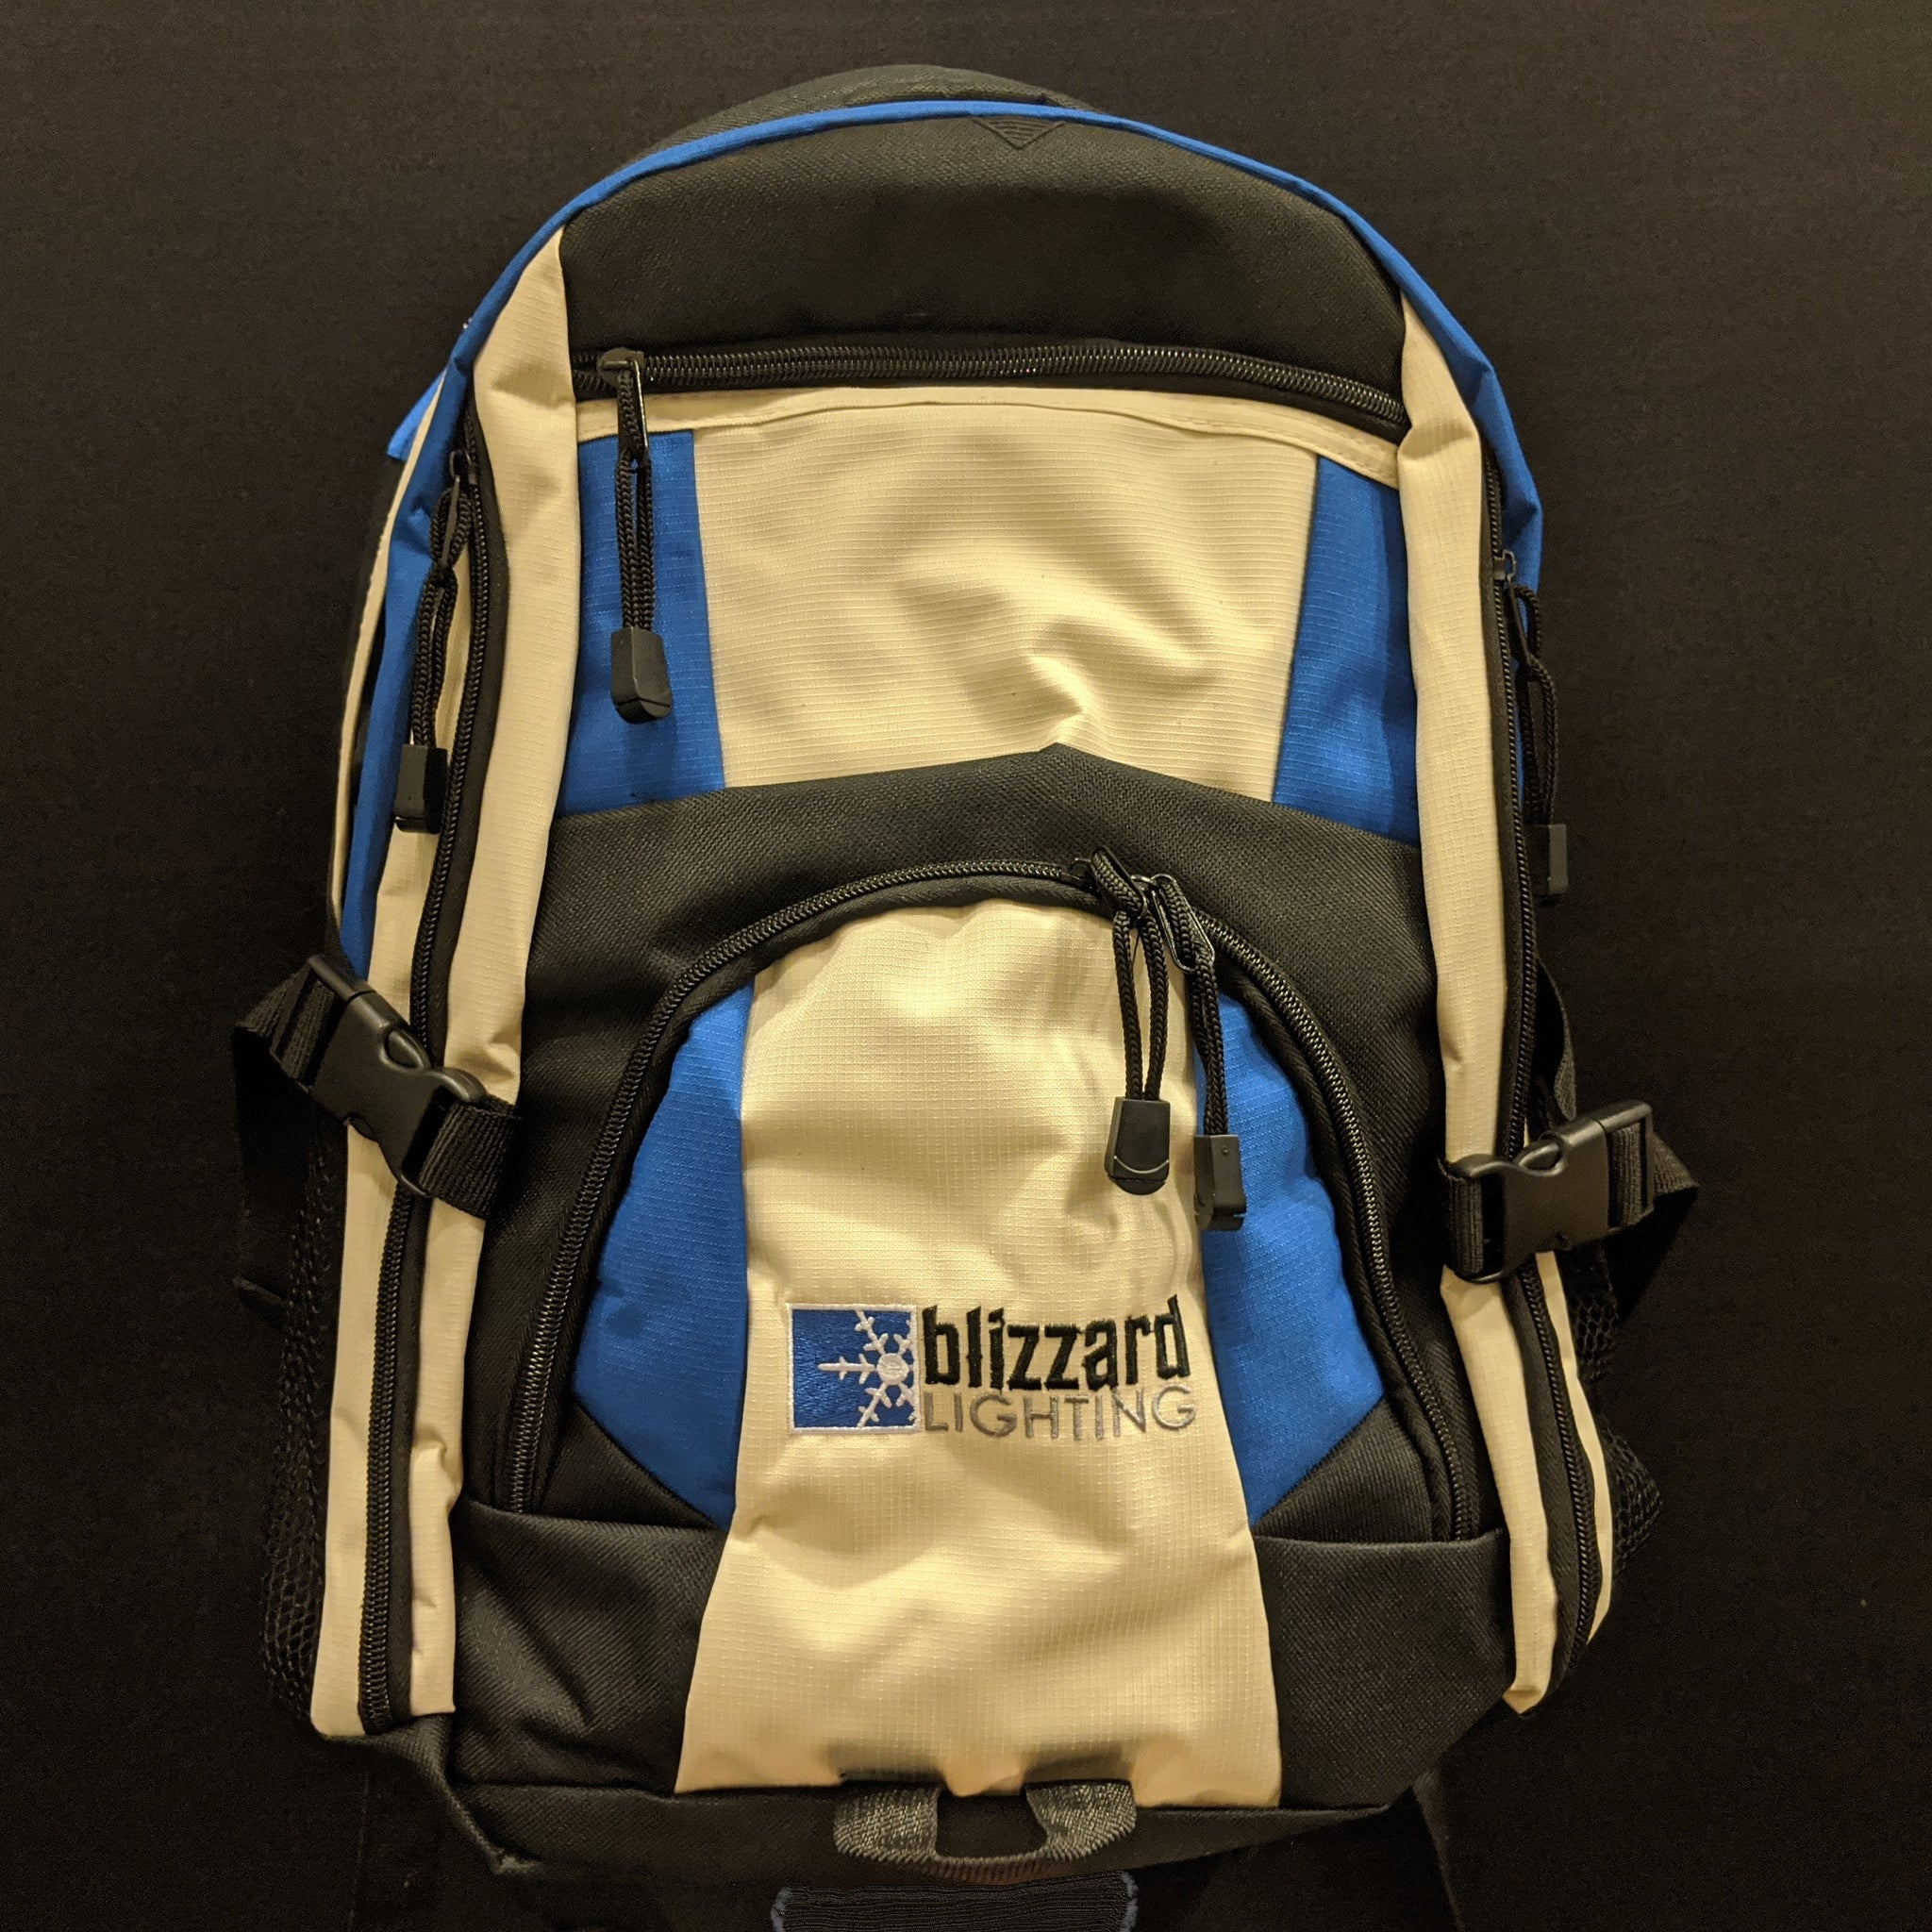 Blizzard Lighting Backpack Bundle